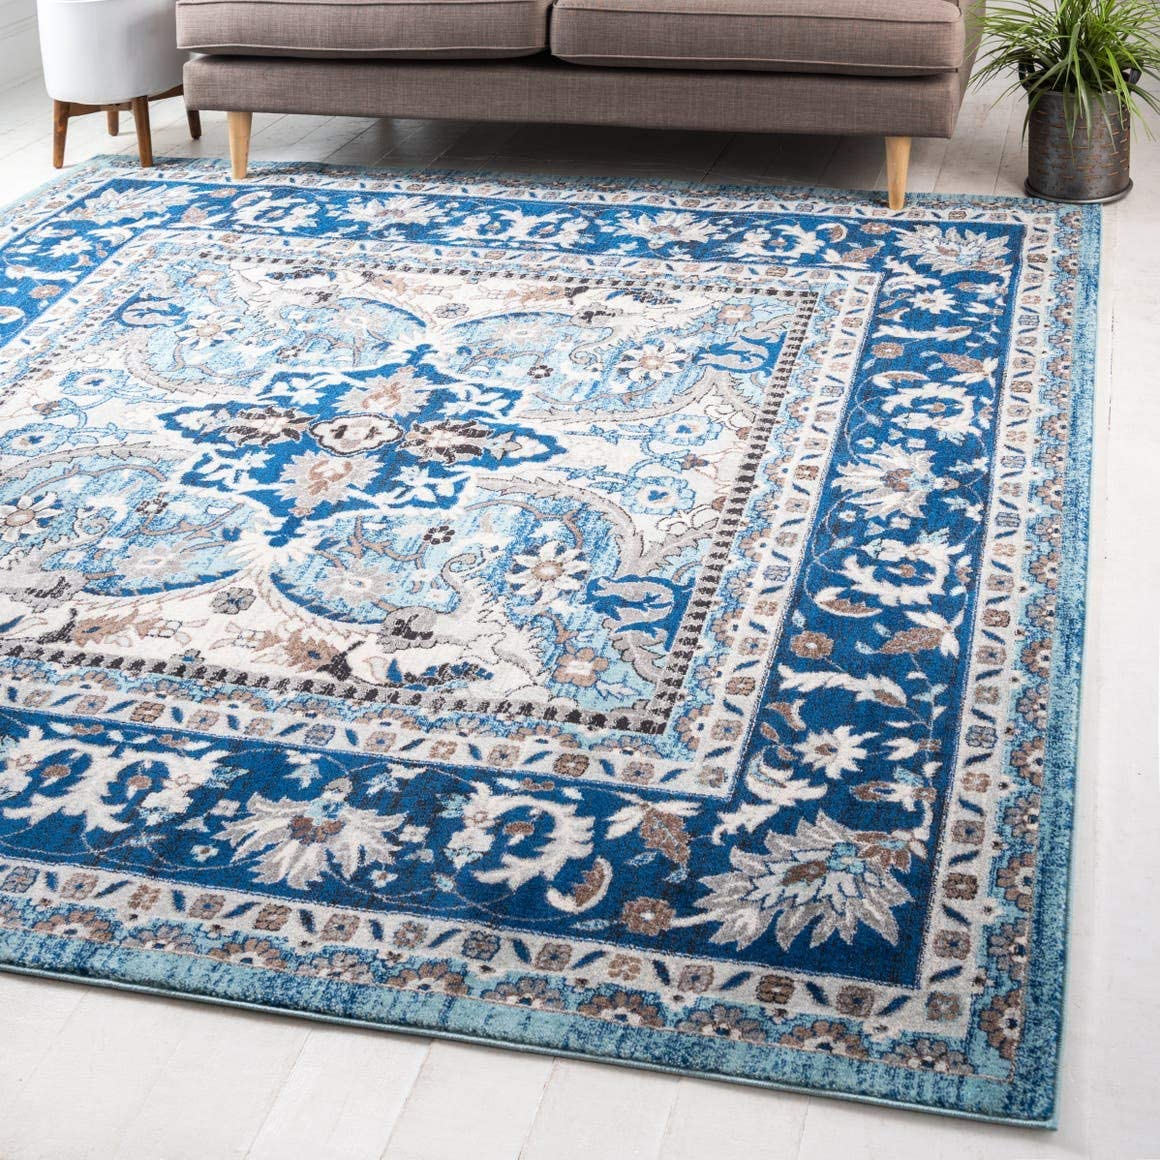 Unique Loom Tradition Collection Classic Southwestern Blue Square Rug 8 4 x 8 4